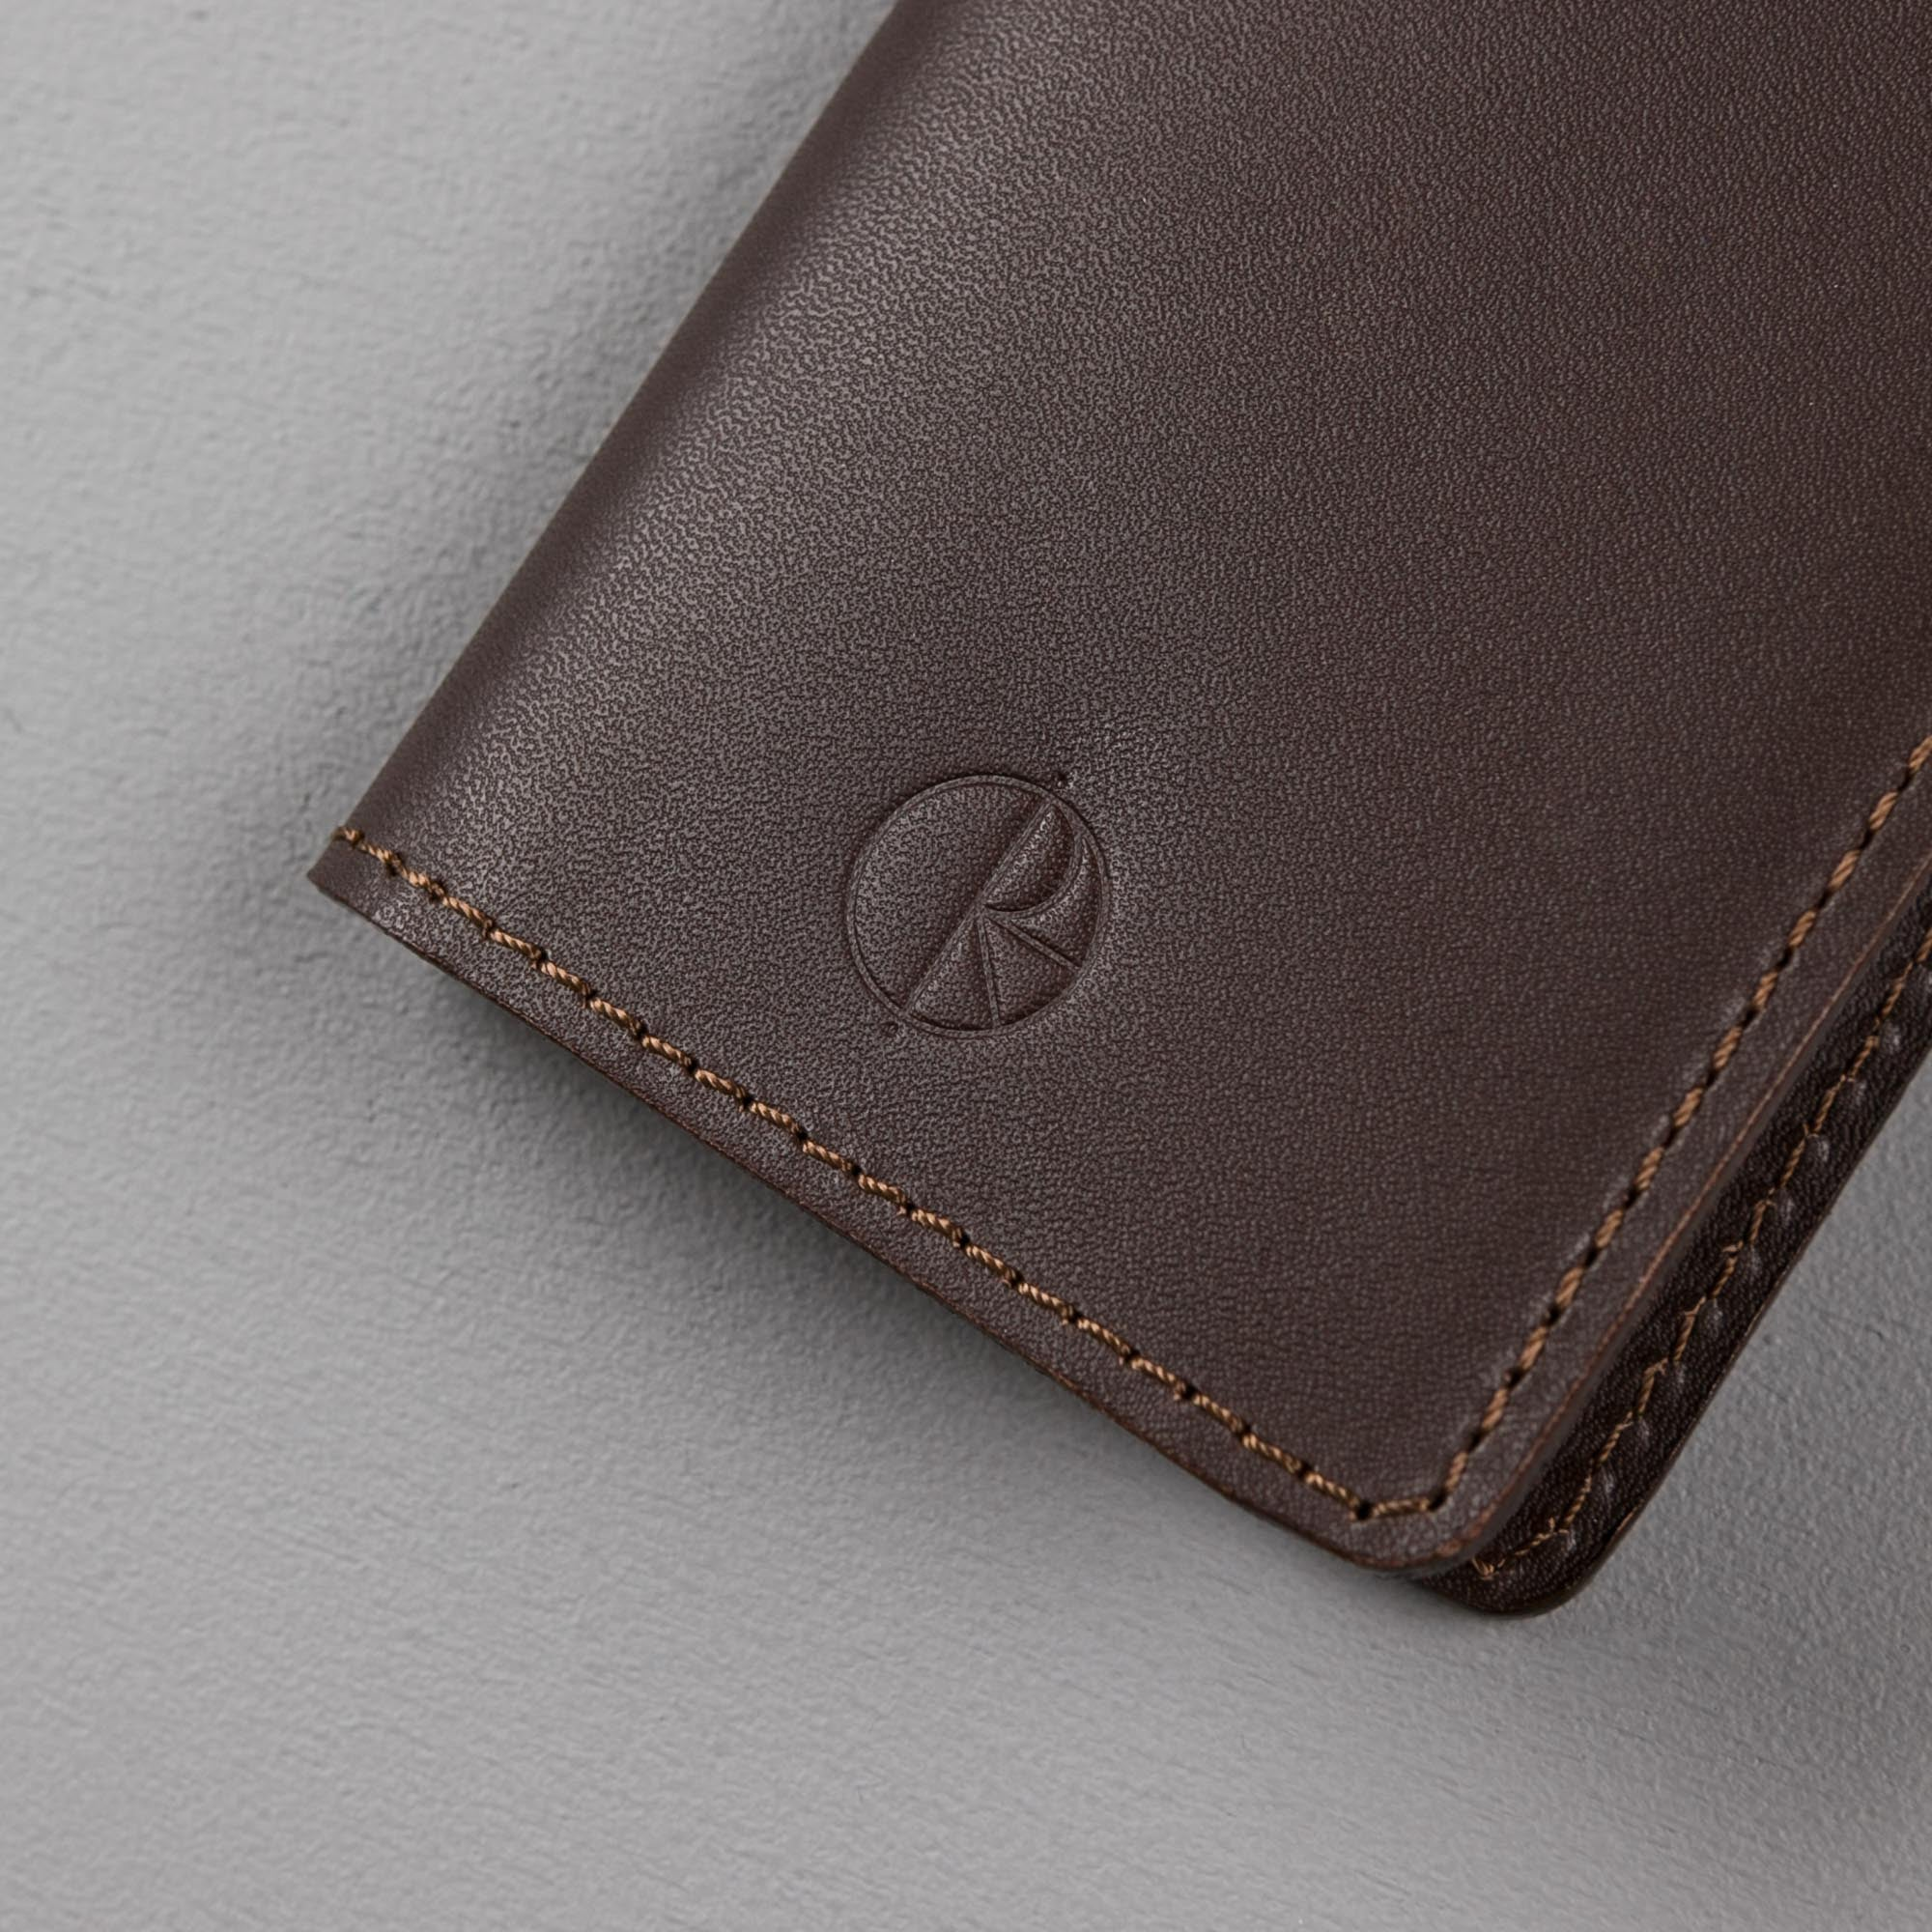 Polar Card Holder Wallet - Brown